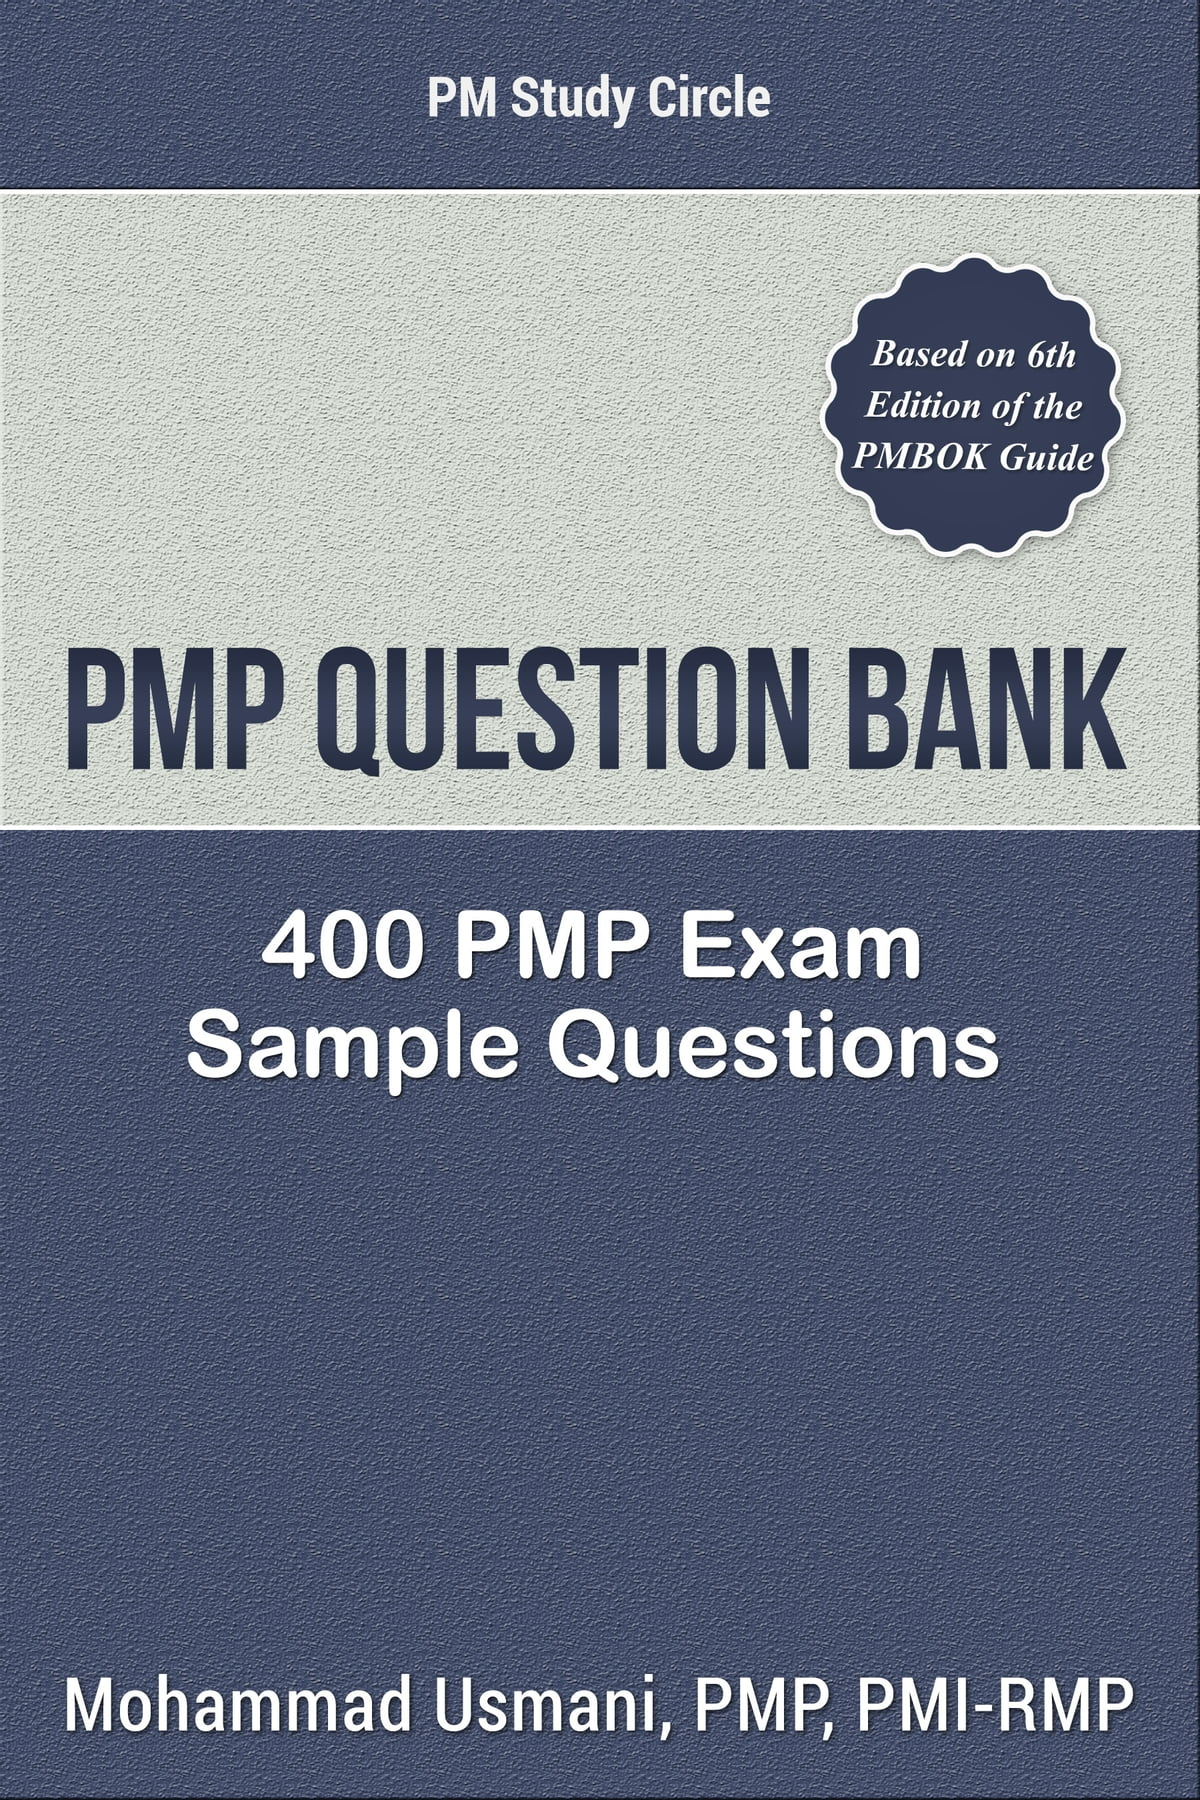 Pmp Question Bank Ebook By Mohammad Usmani 9781311130129 Rakuten